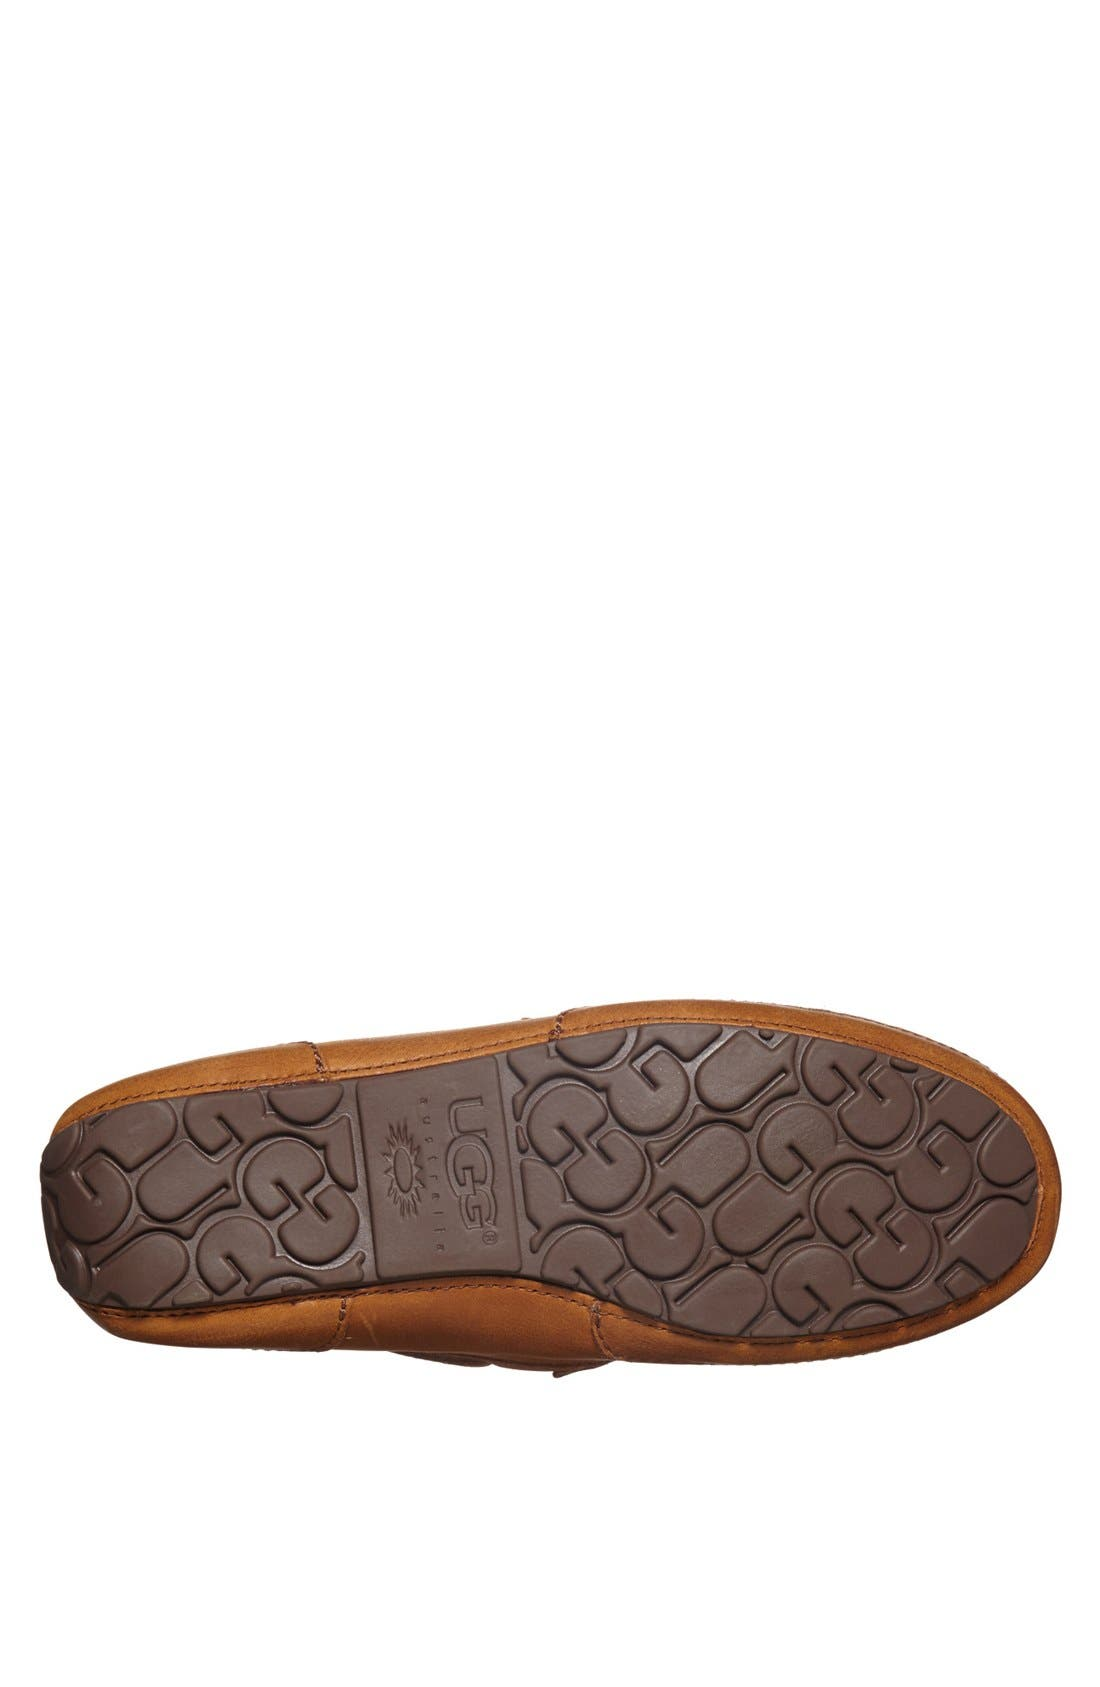 'Chester' Driving Loafer,                             Alternate thumbnail 23, color,